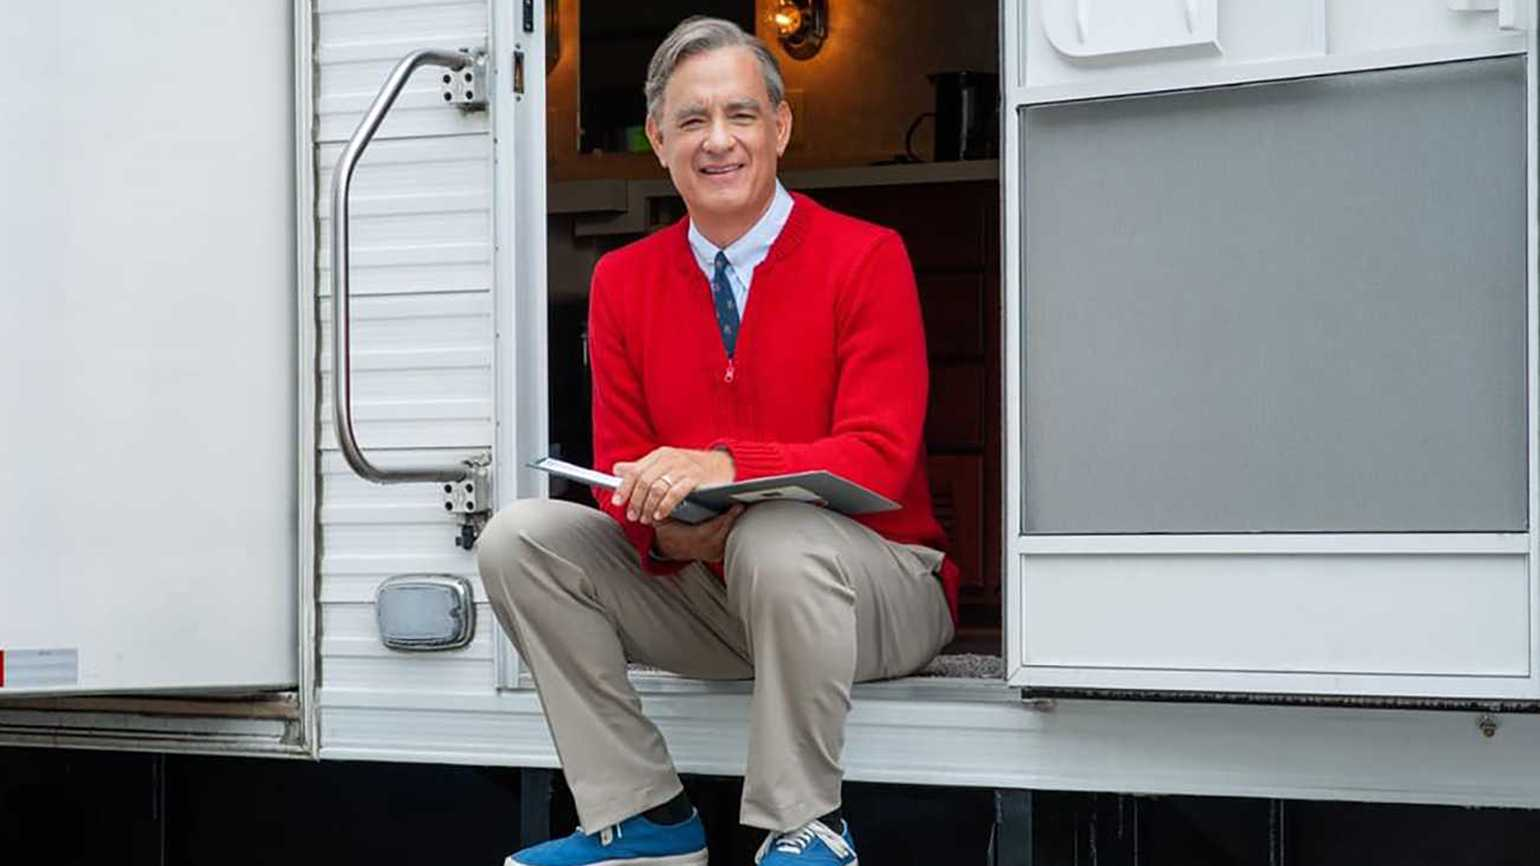 Tom Hanks as Mr. Rogers in 'A Beautiful Day in the Neighborhood'